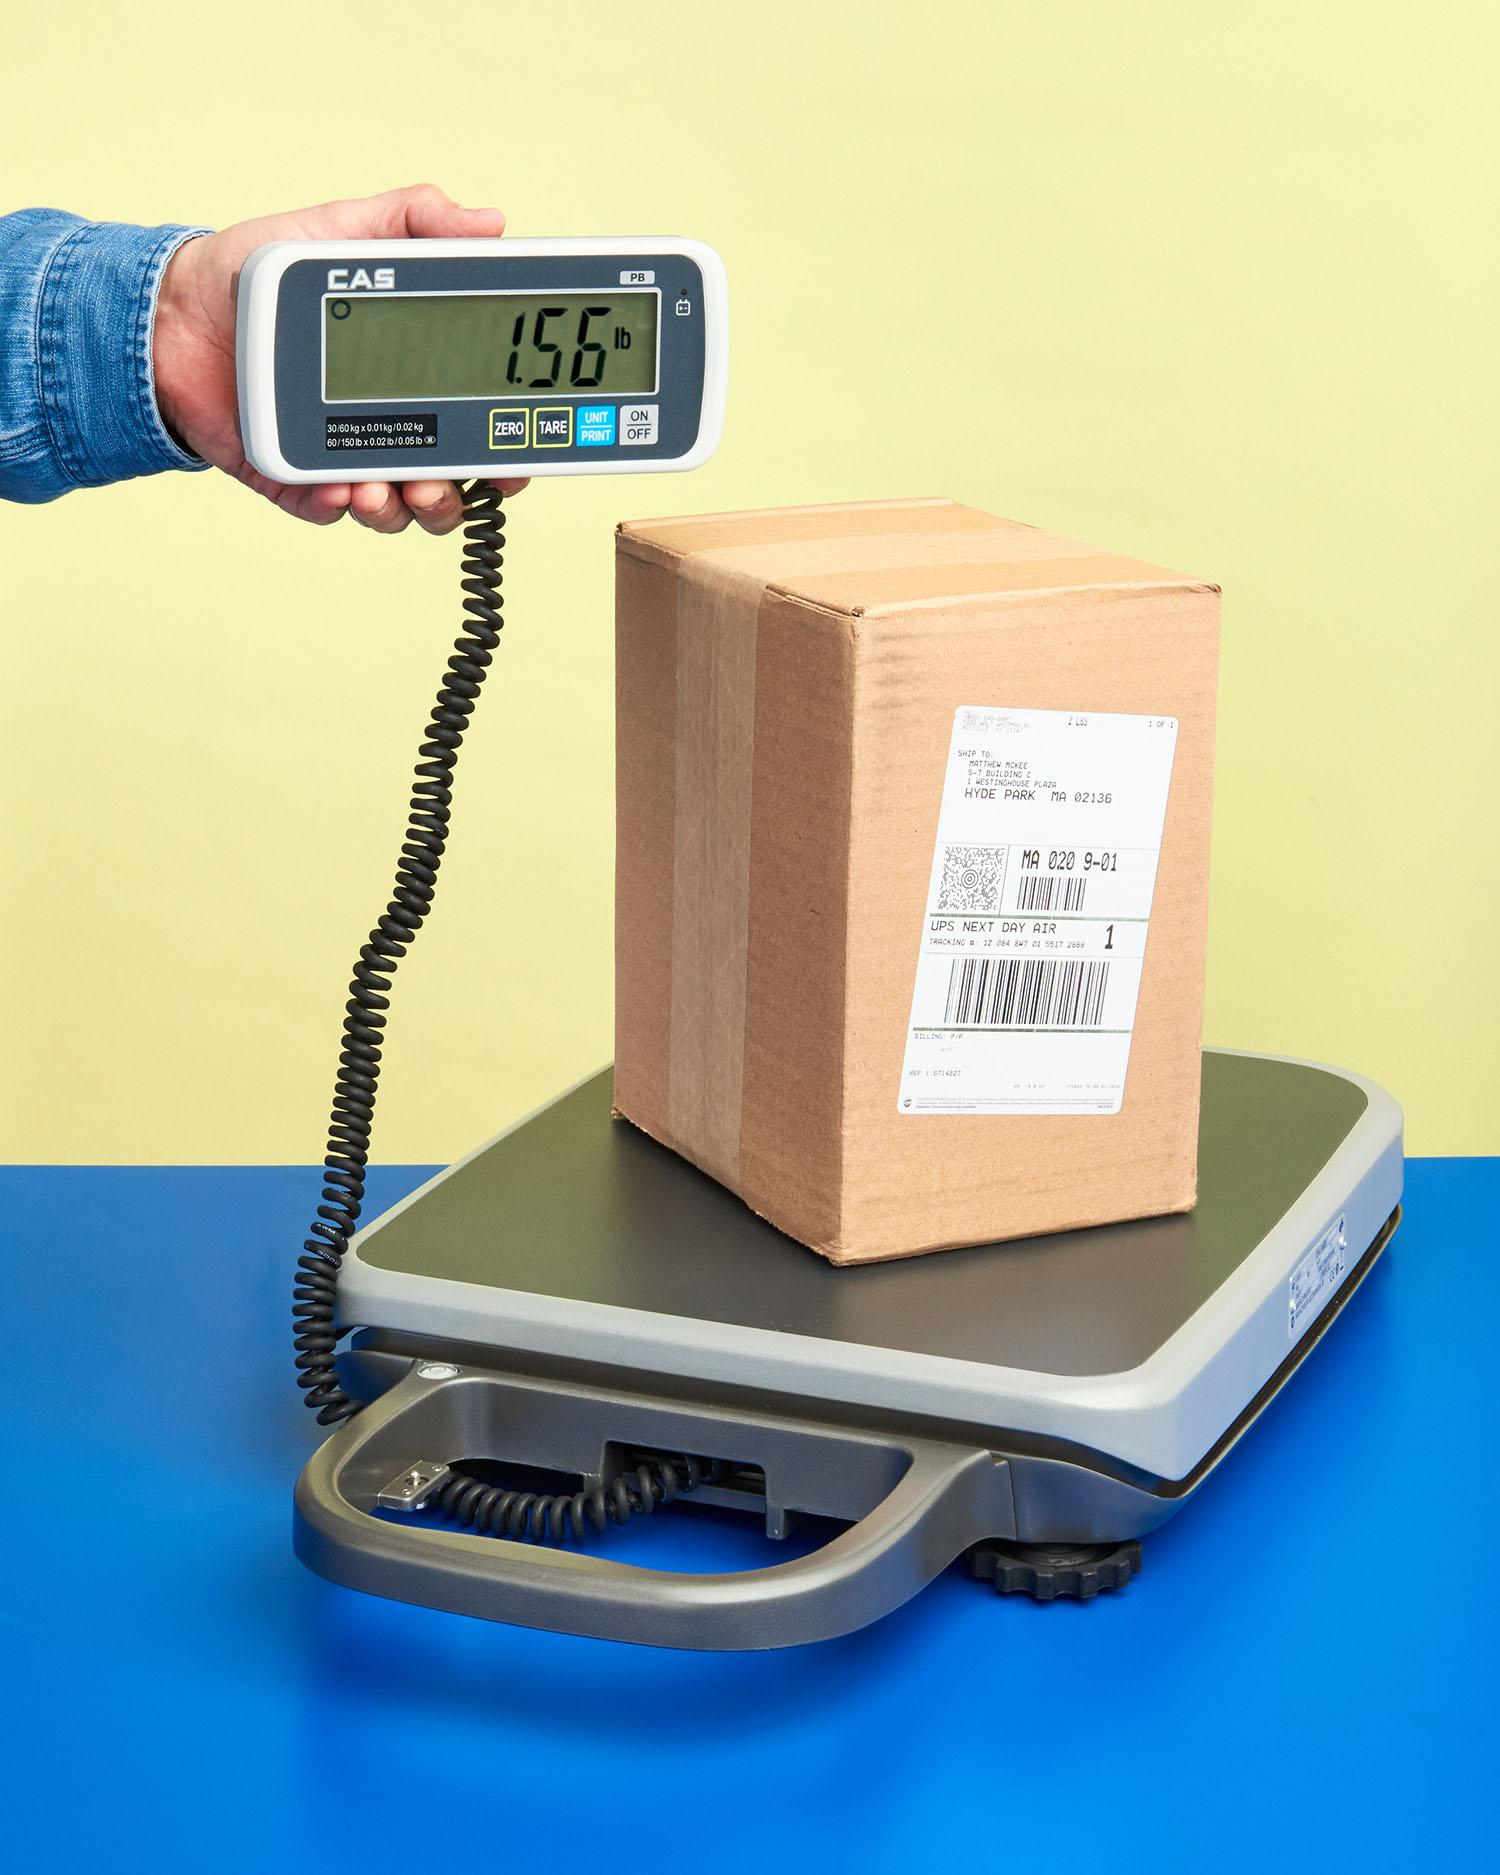 PORTABLE BENCH SCALE DISPLAY DETACHES FOR EASY VIEWING